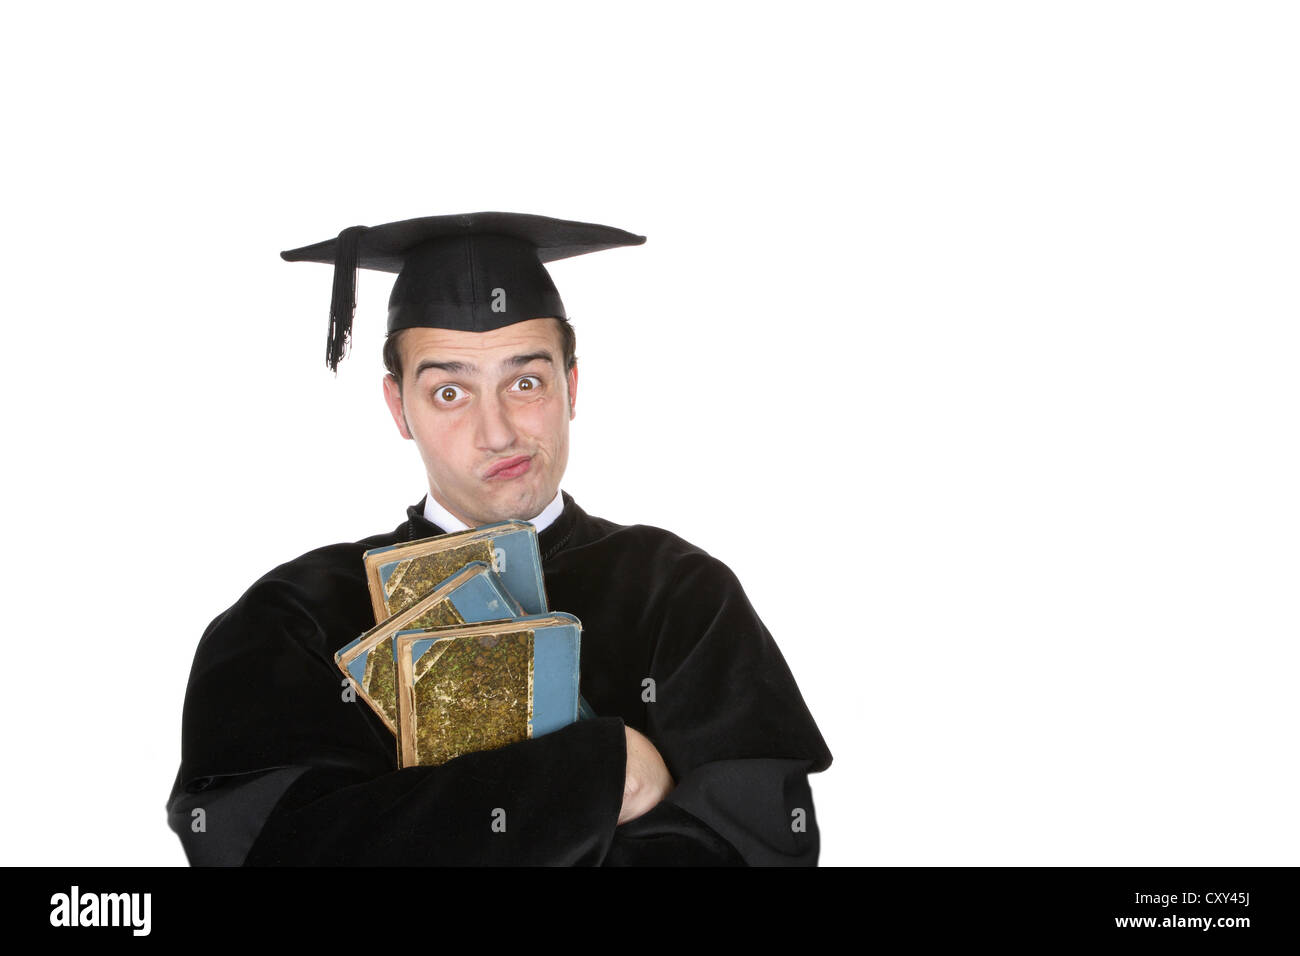 Student wearing a graduation cap and looking skeptical - Stock Image